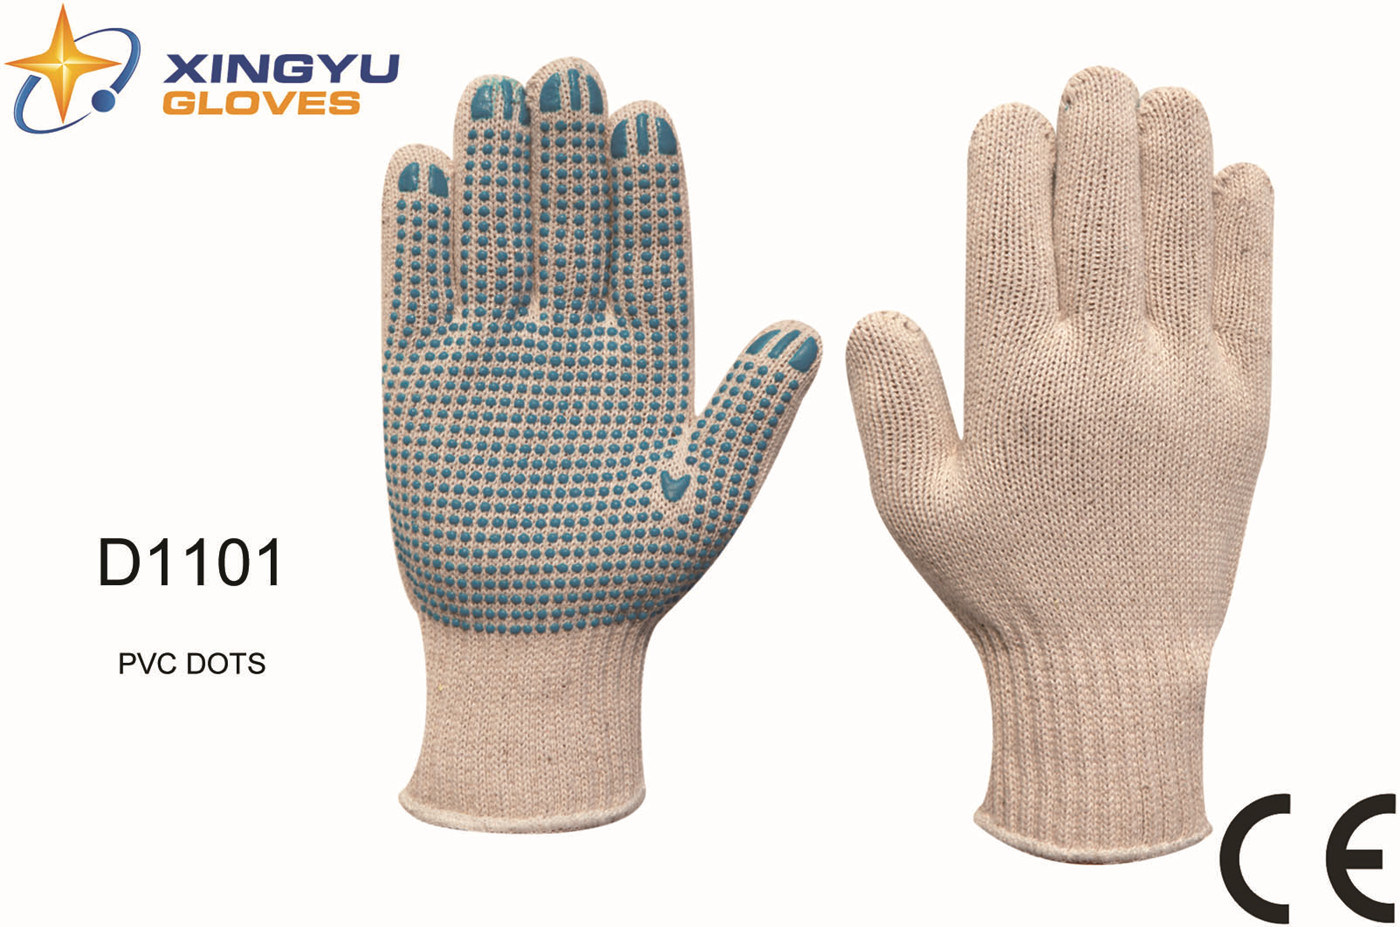 T/C Shell PVC Dots Safety Work Glove (D1101)